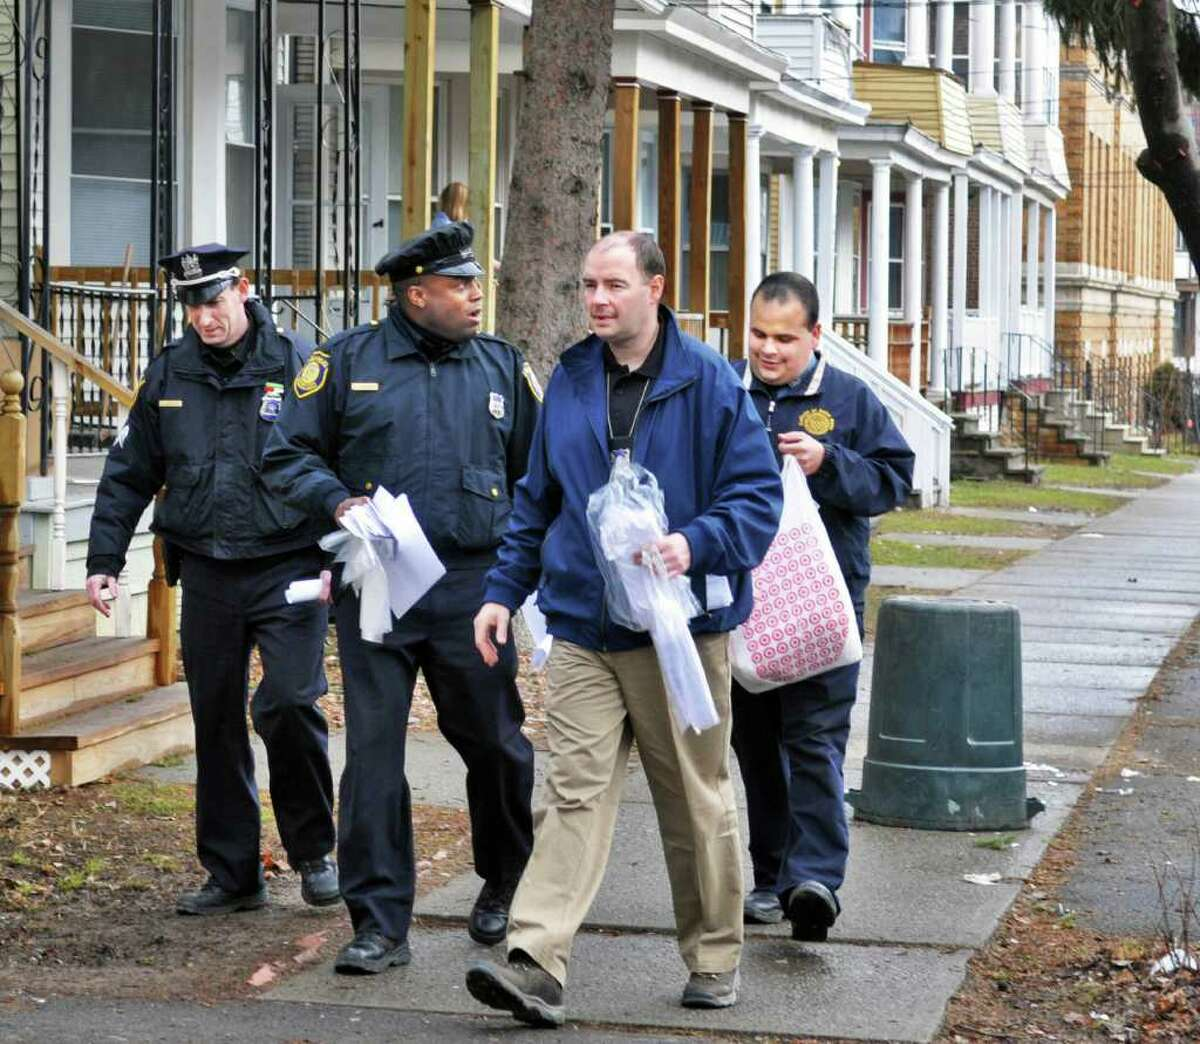 Albany police officers, from left, Sgt. Jason Davis, Officer Kelly Kimbrough and Officer Matthew Monesano along with Dave Mankind (at right) from College of St. Rose security go door to door along Hudson Ave. in Albany Wednesday afternoon March 16, 2011, speaking to students following Saturday morning's melee. (John Carl D'Annibale / Times Union)